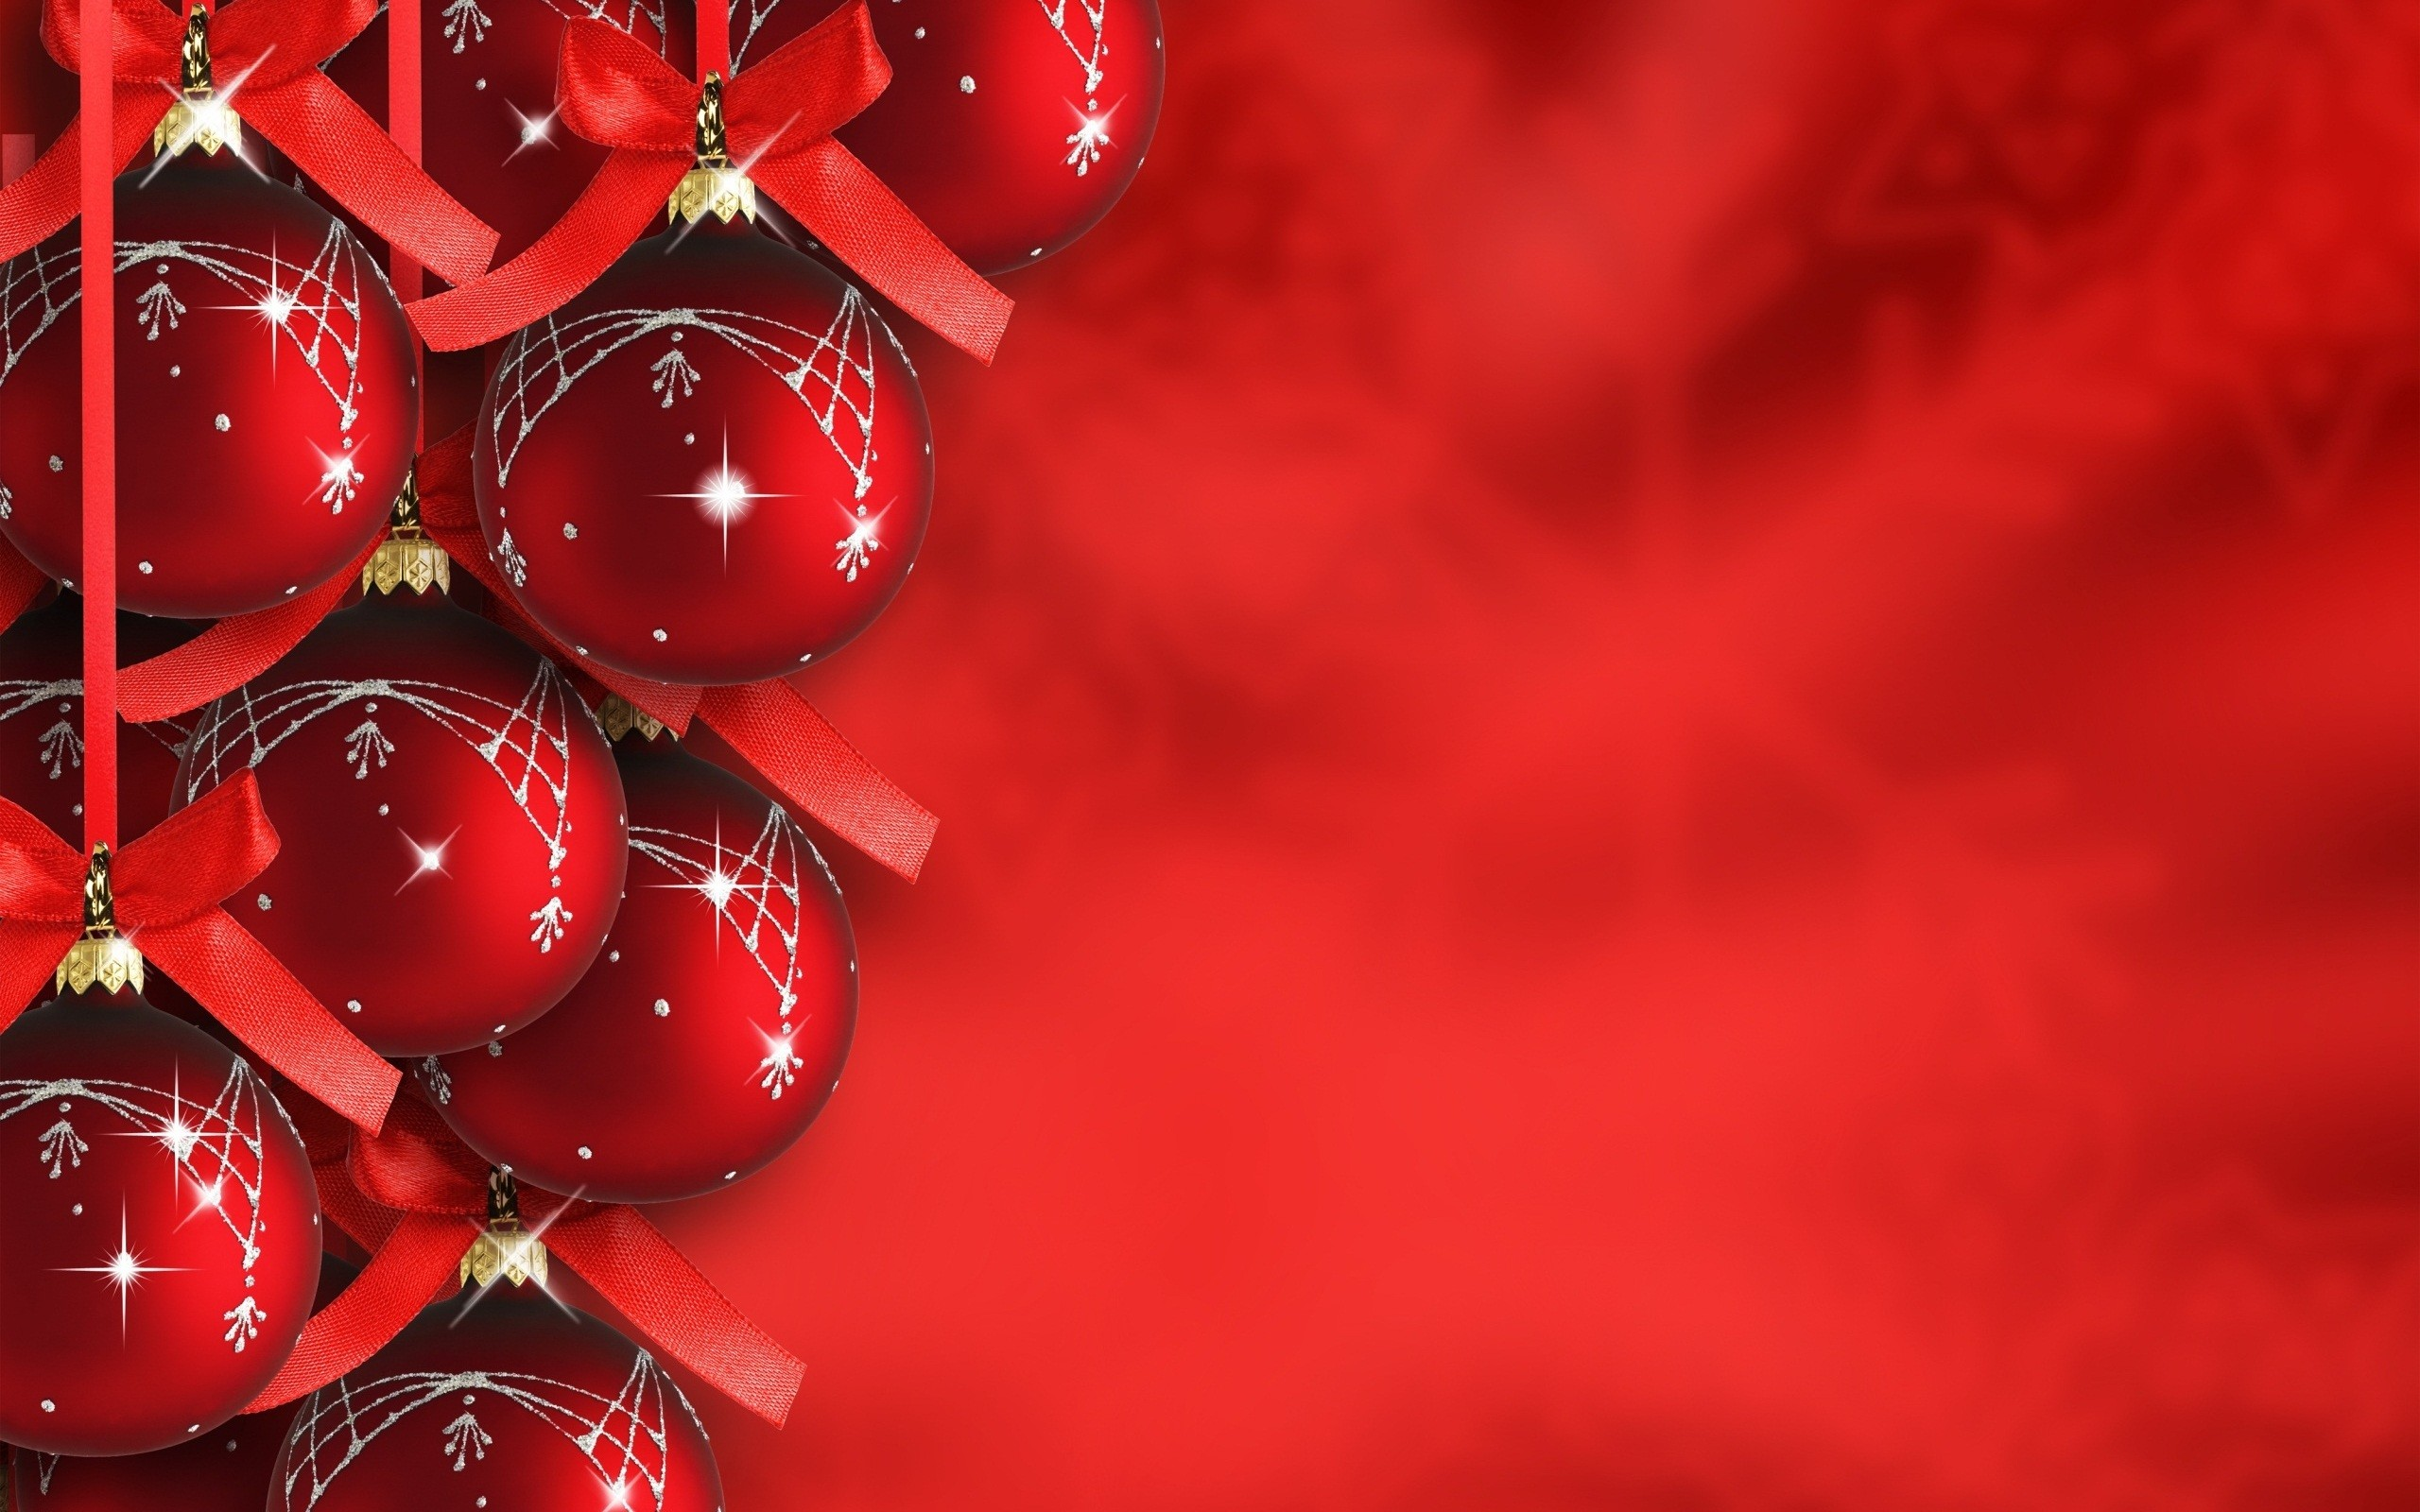 3D Christmas Backgrounds ·①